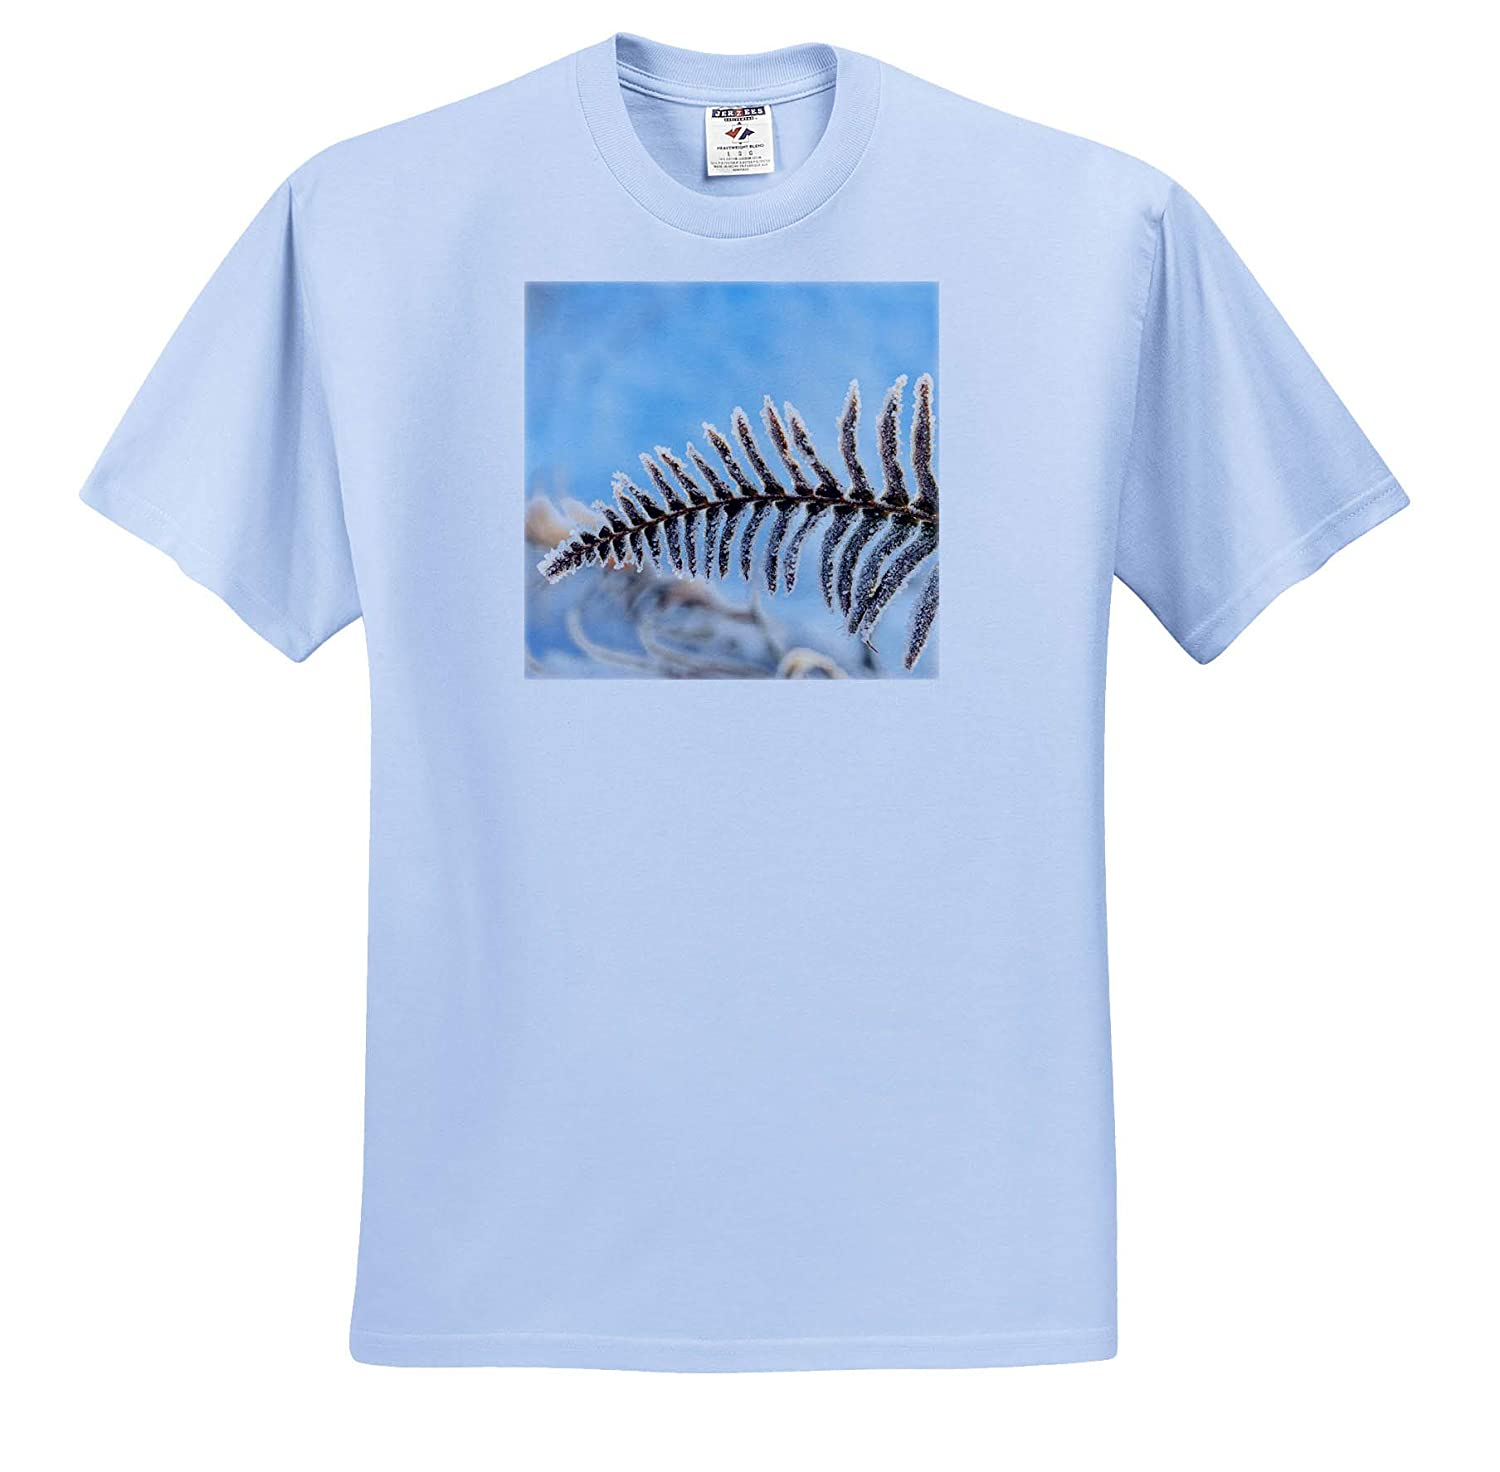 ts/_315192 Winter - Adult T-Shirt XL January Snow and Frost on Fern 3dRose Danita Delimont